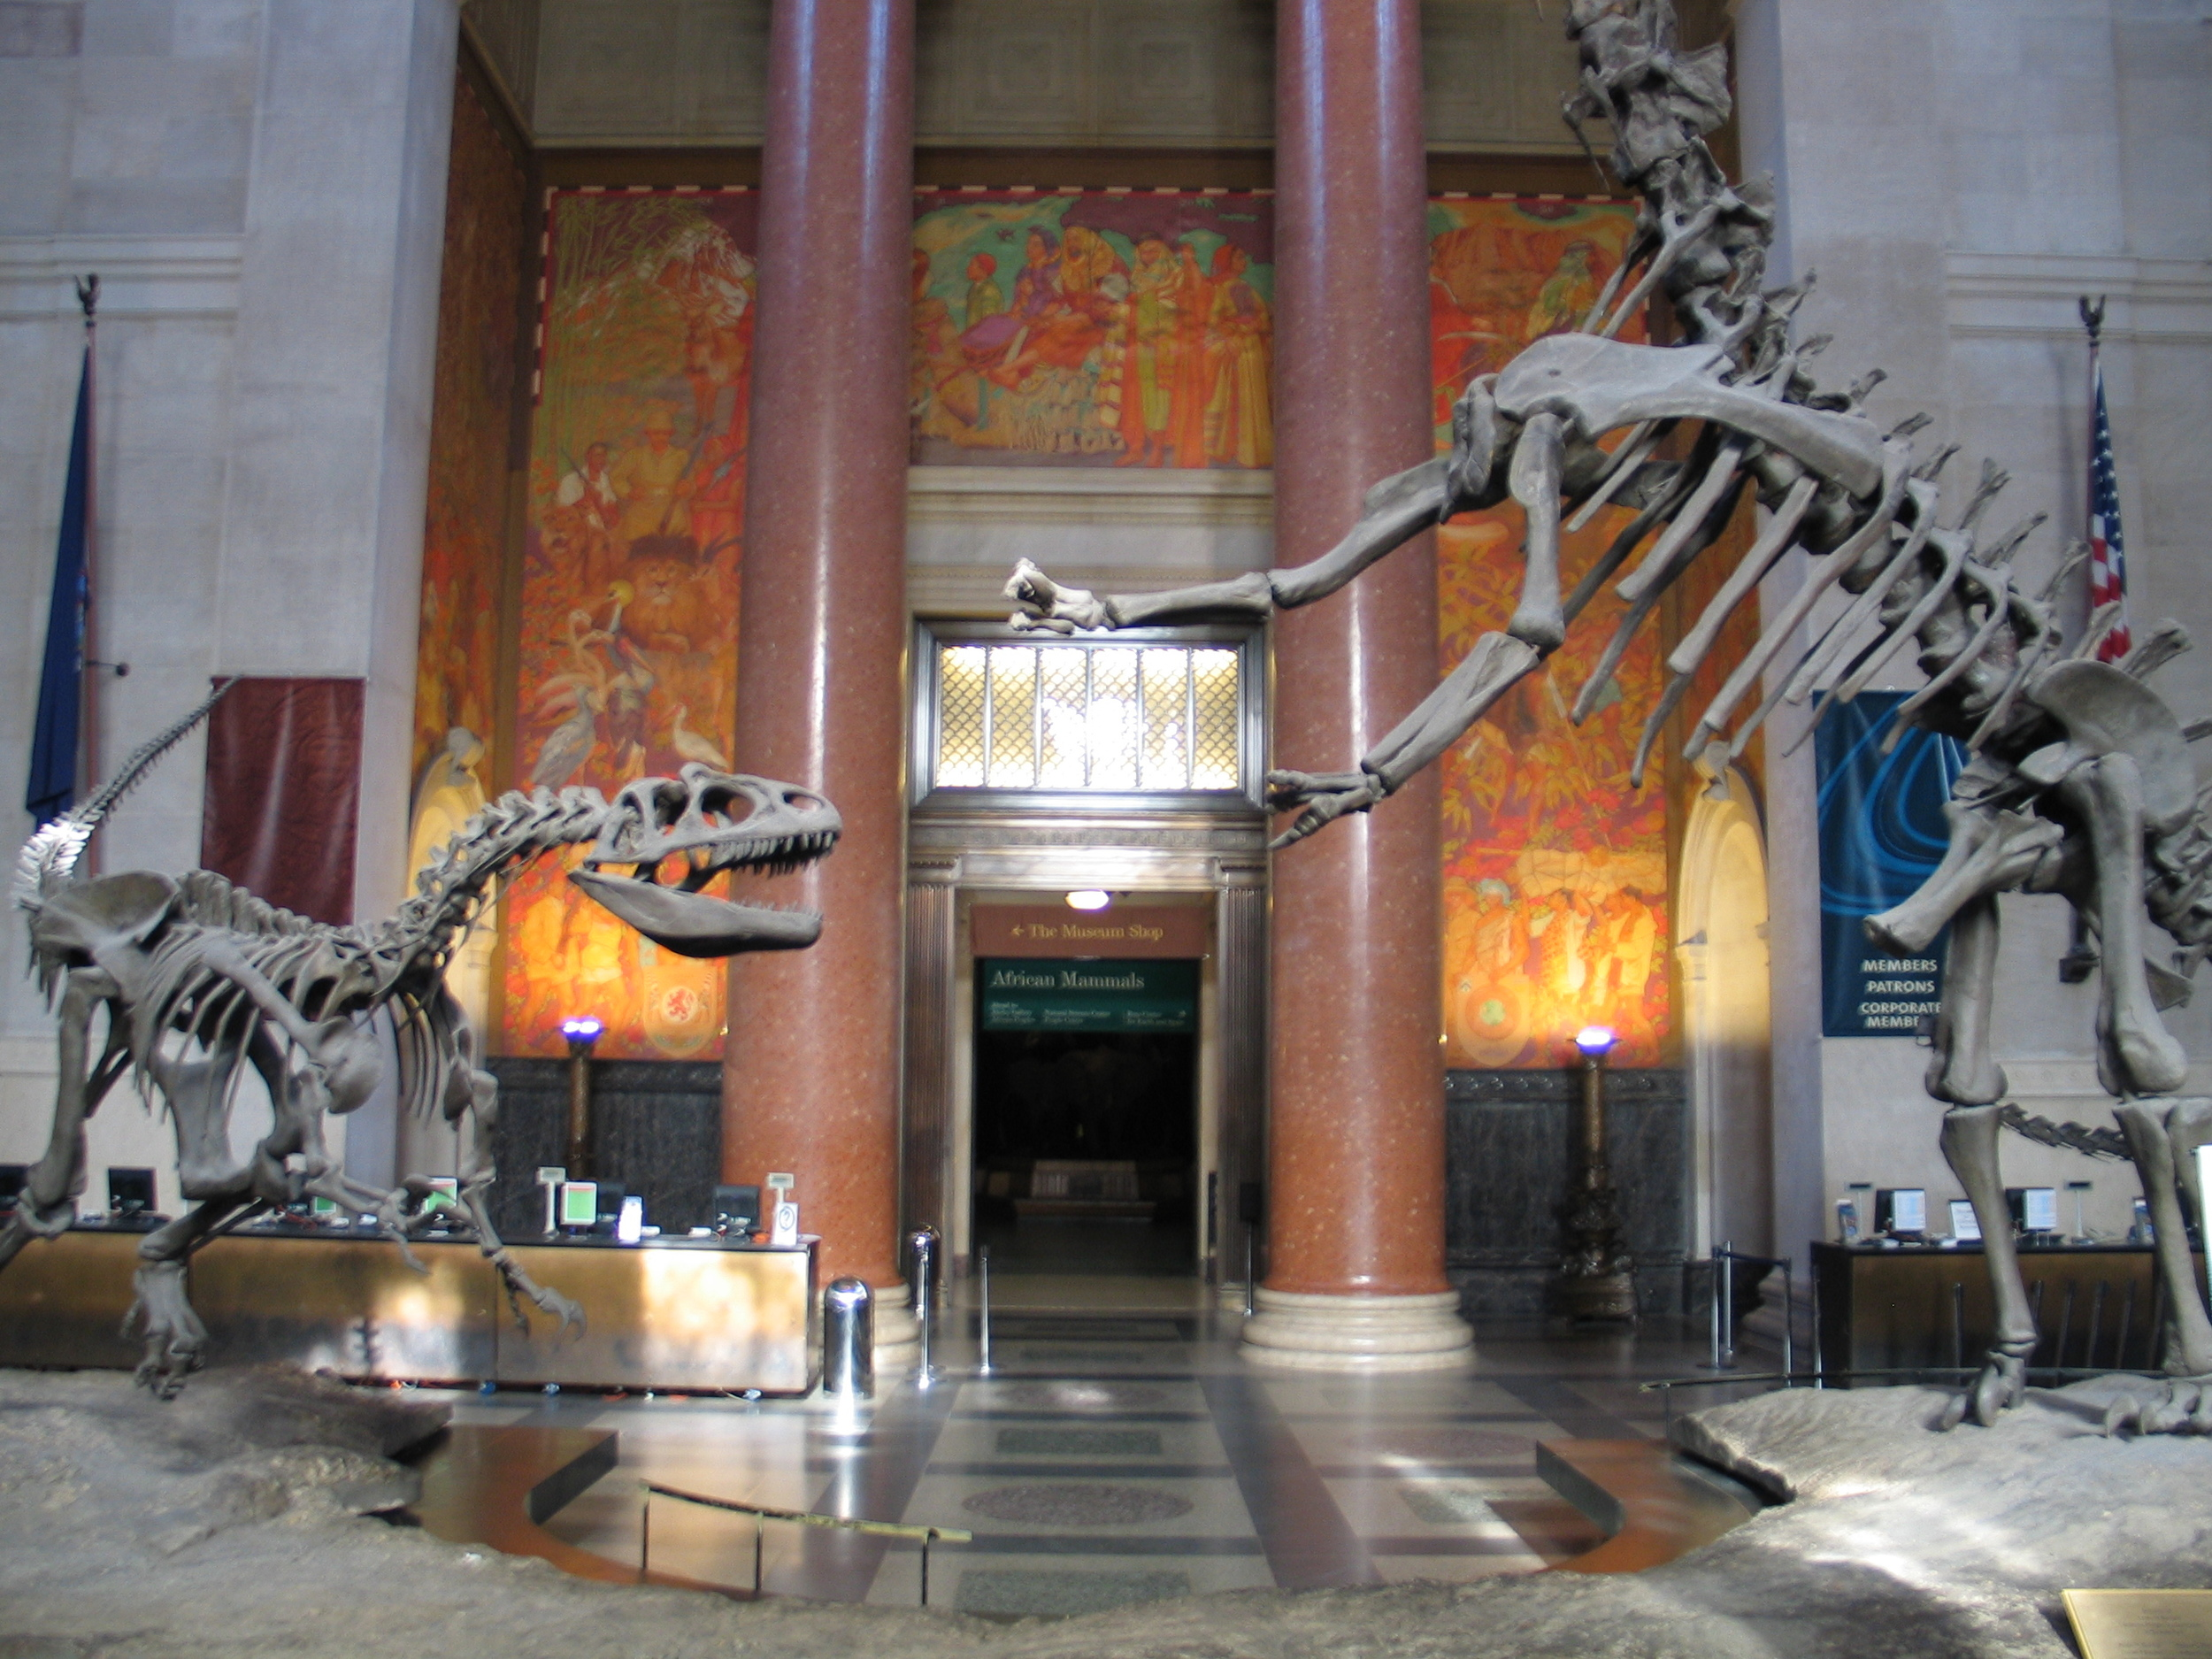 Dinosaur skeletons guard the lobby of New York City's American Museum of Natural History.